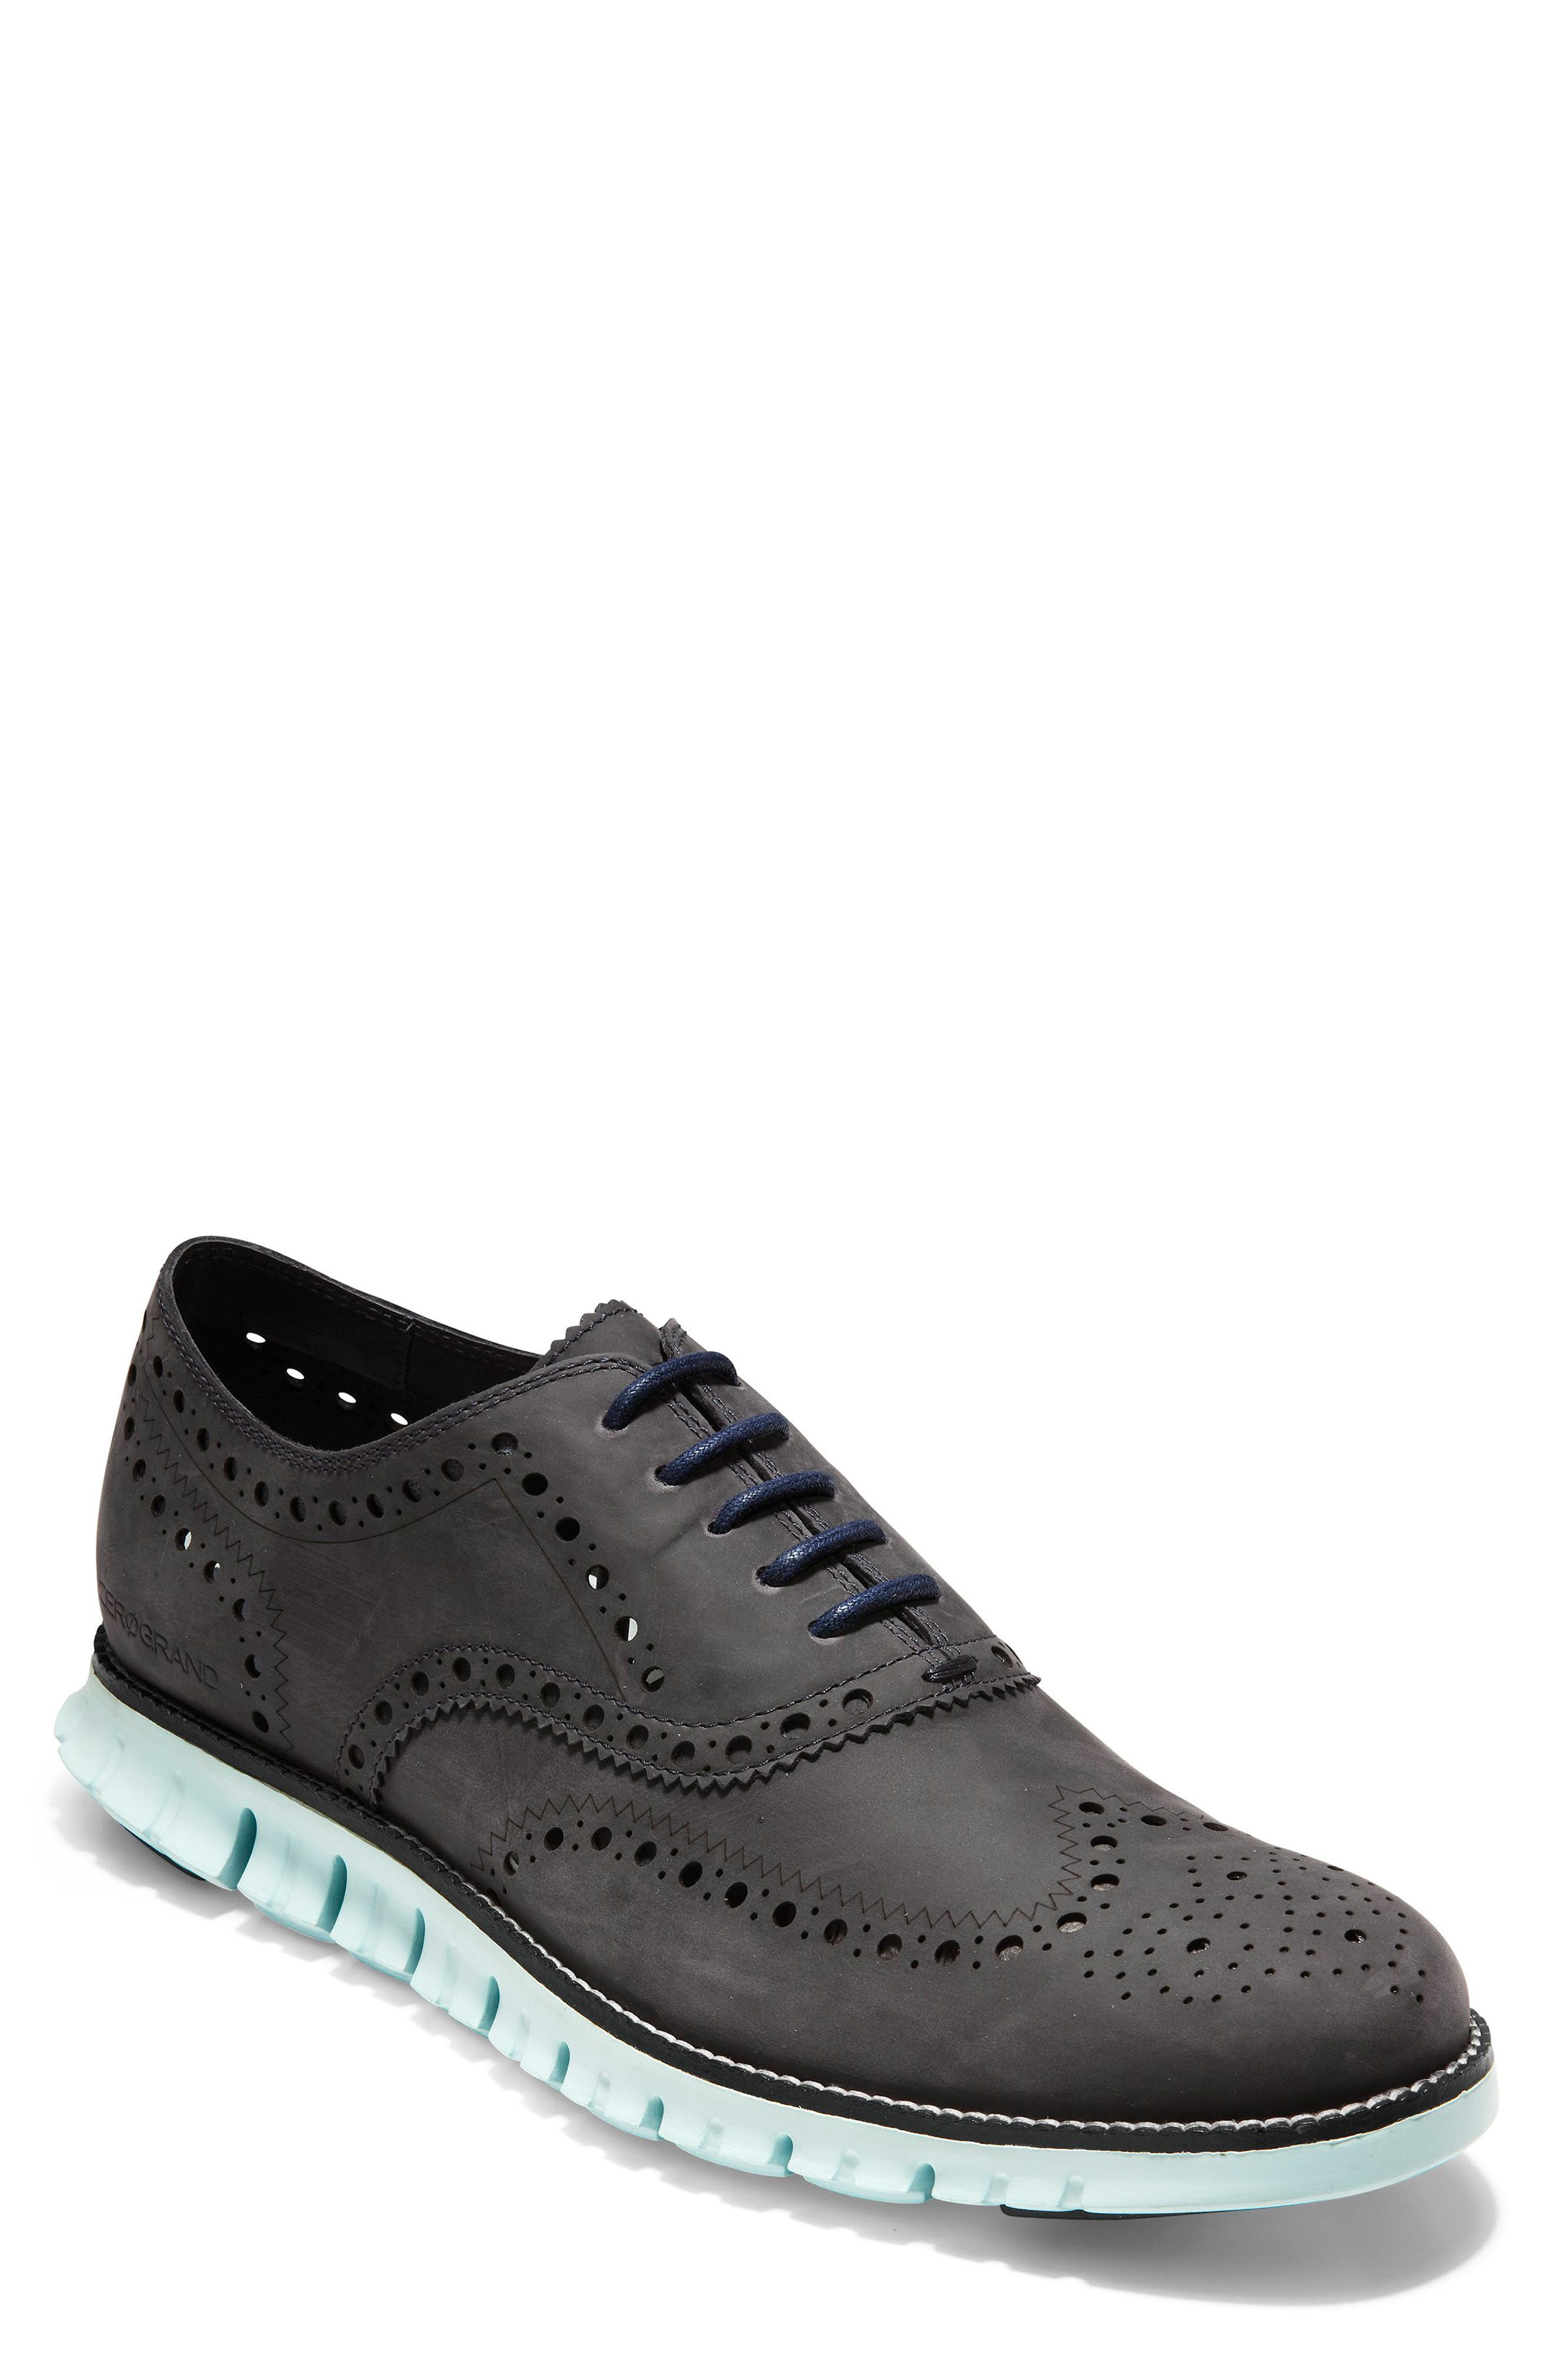 'ZeroGrand' Wingtip Oxford, Main, color, PEACOAT/ MIST